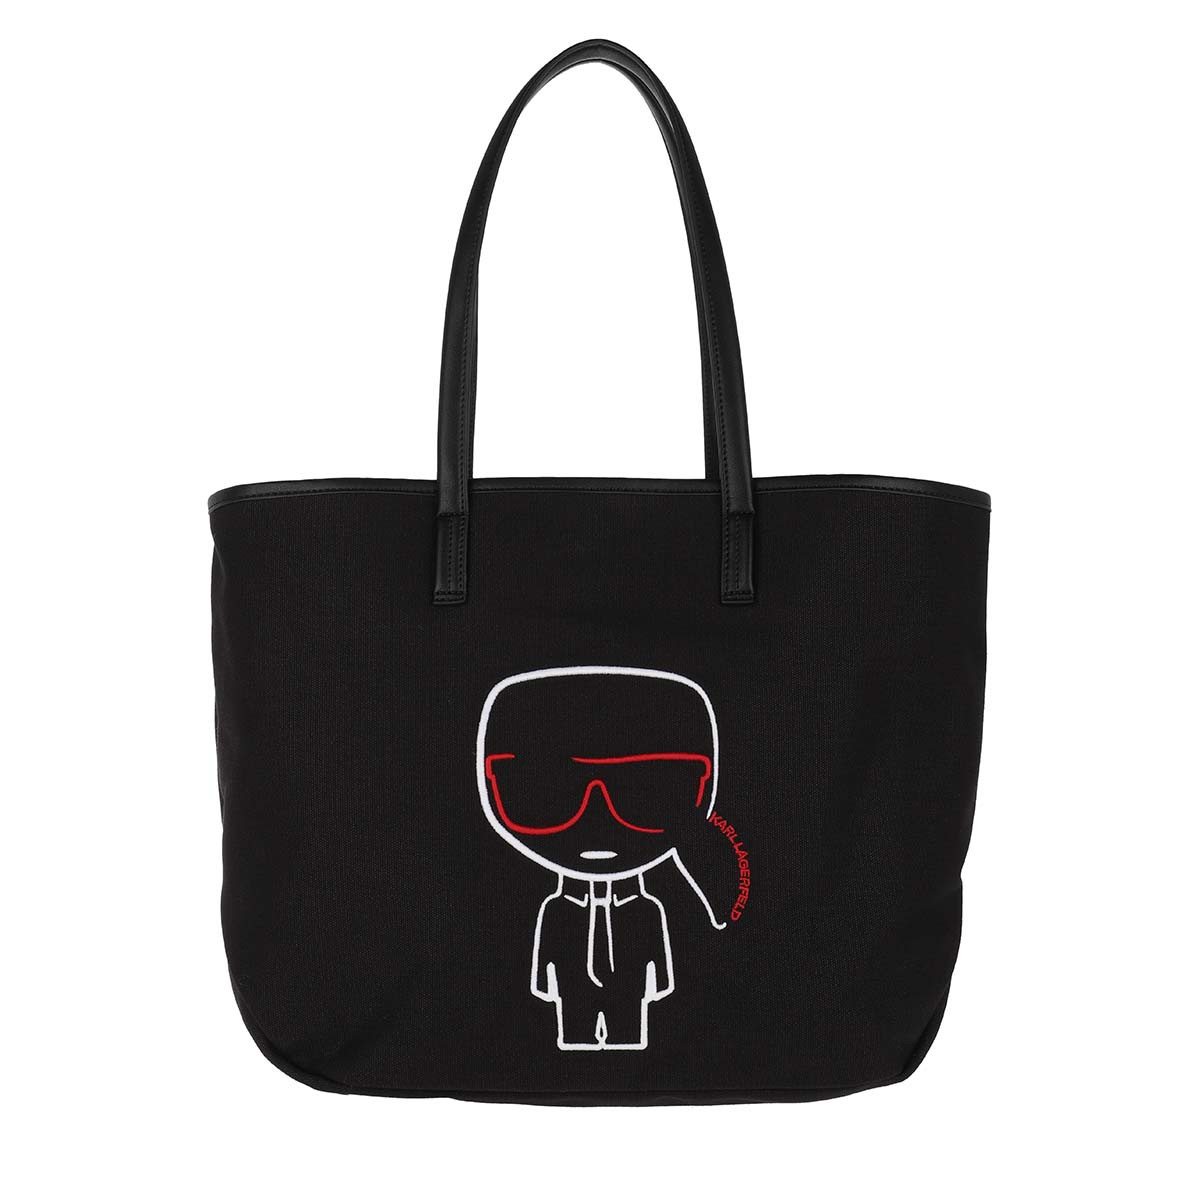 Karl Lagerfeld Shopper - Ikonik Canvas Shopper Black - in schwarz - für Damen